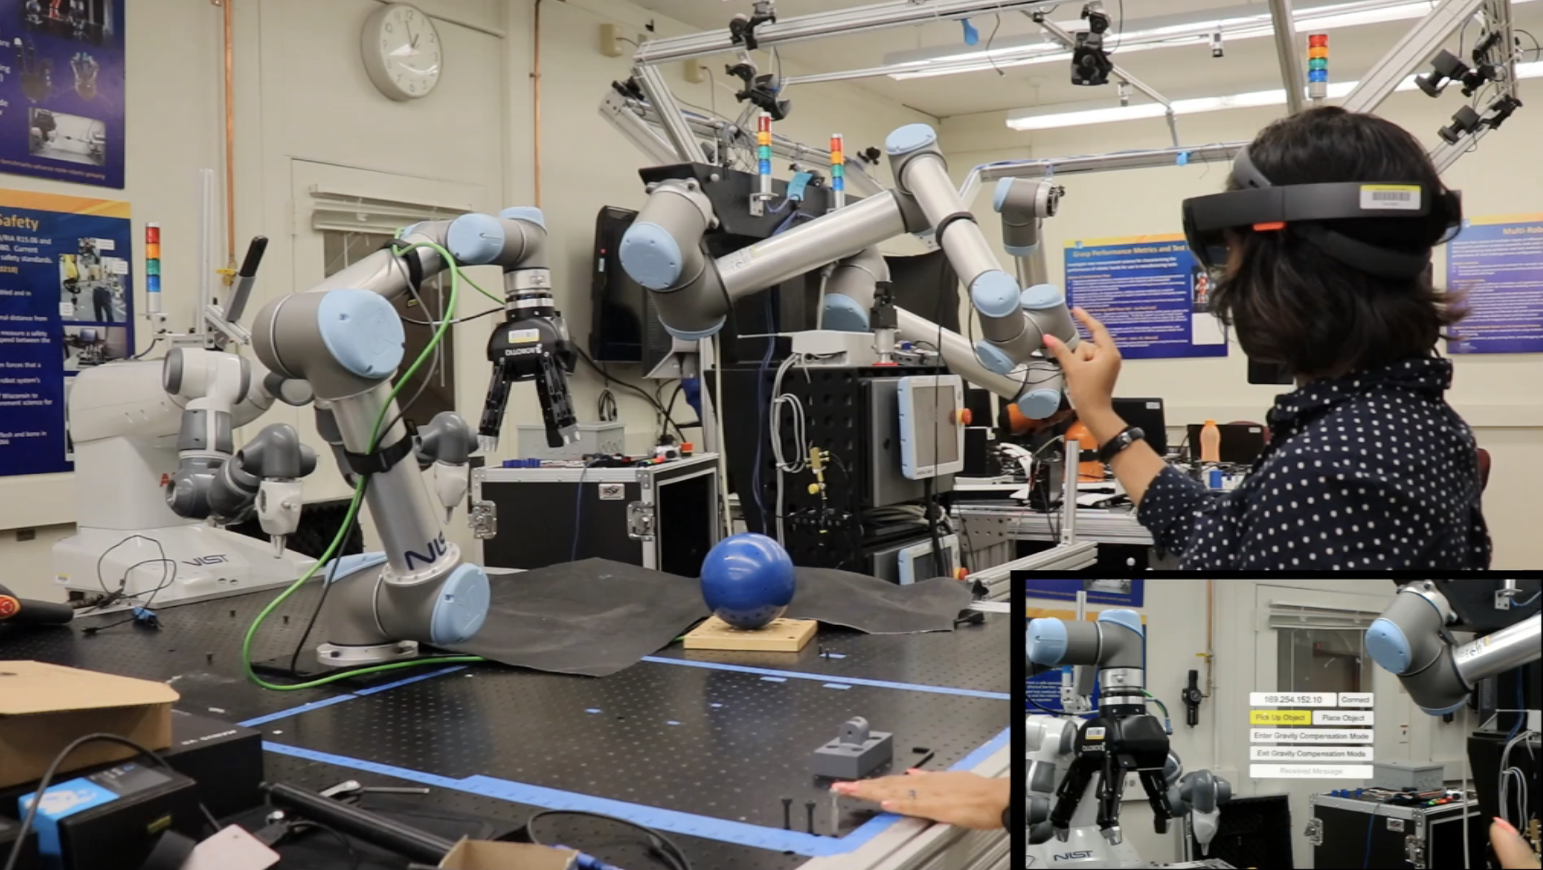 Researcher uses a virtual reality headset to manipulate a robotic arm. In the corner is a box showing the VR headset display, including the IP address, pick up and place object commands, and gravity compensation commands.